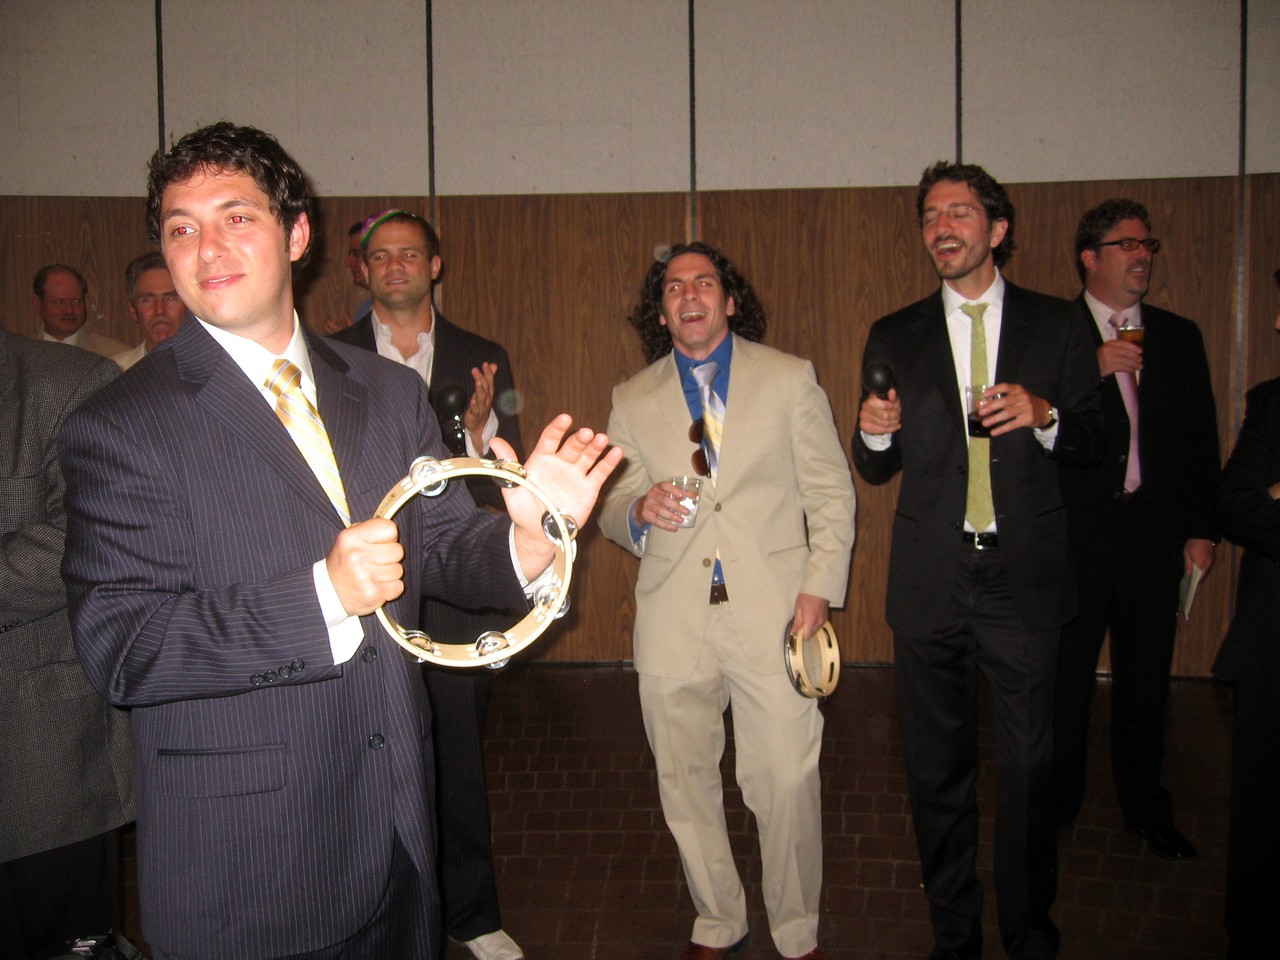 Sacha, David, Noam, and Gabe (friends of the bride and groom) interrupt Avram